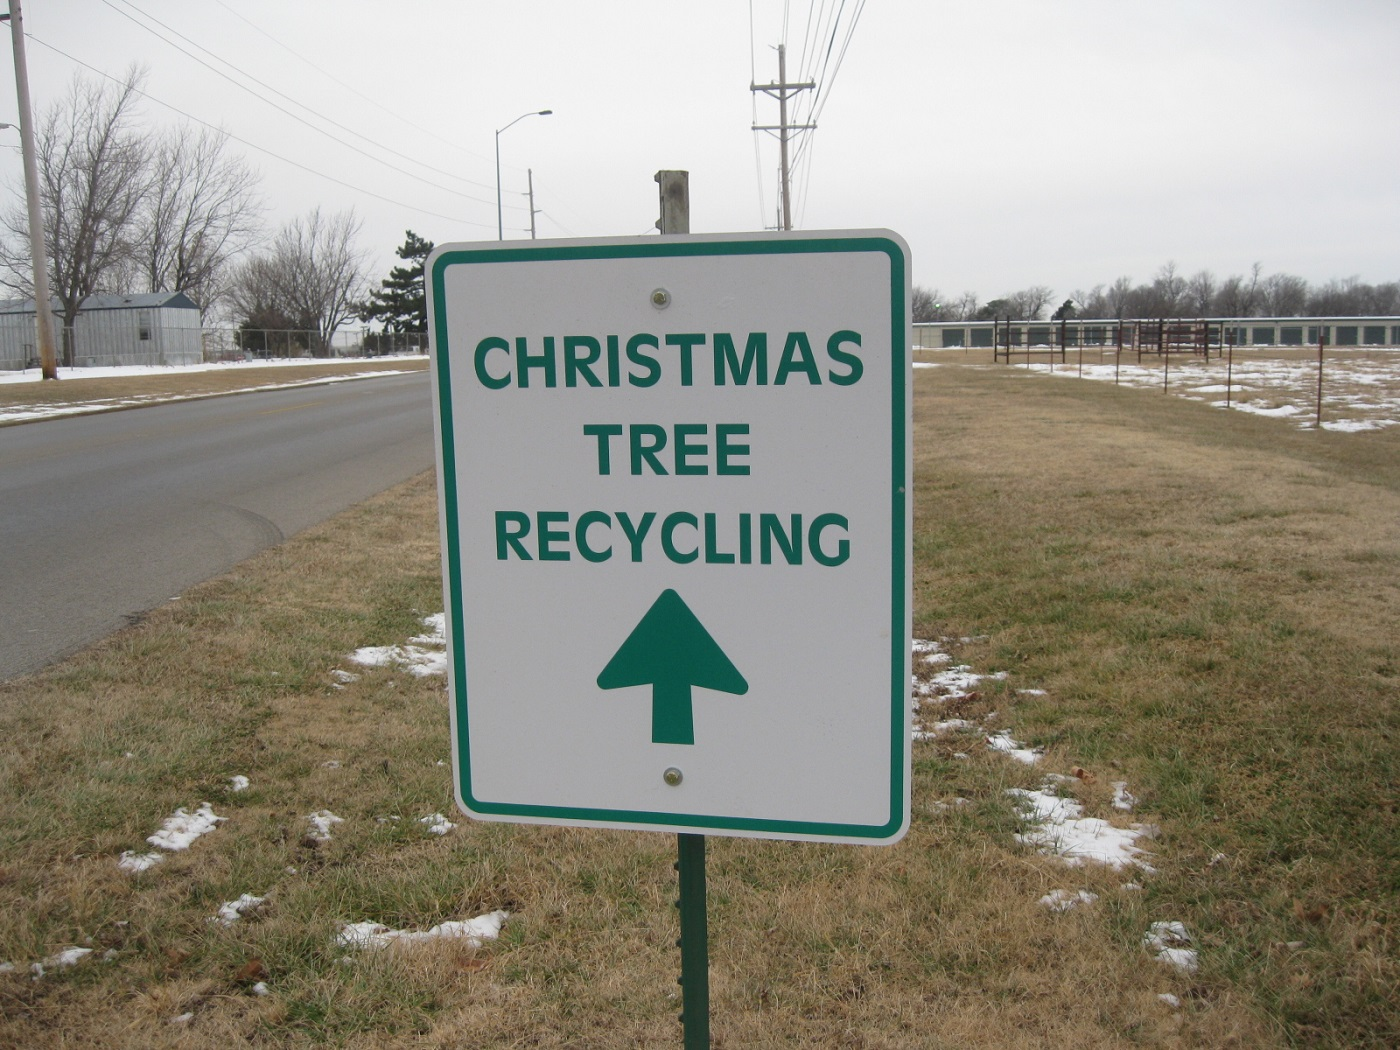 Christmas tree recycling drop-off sign - 5 traditional practices that are getting in the way of green living